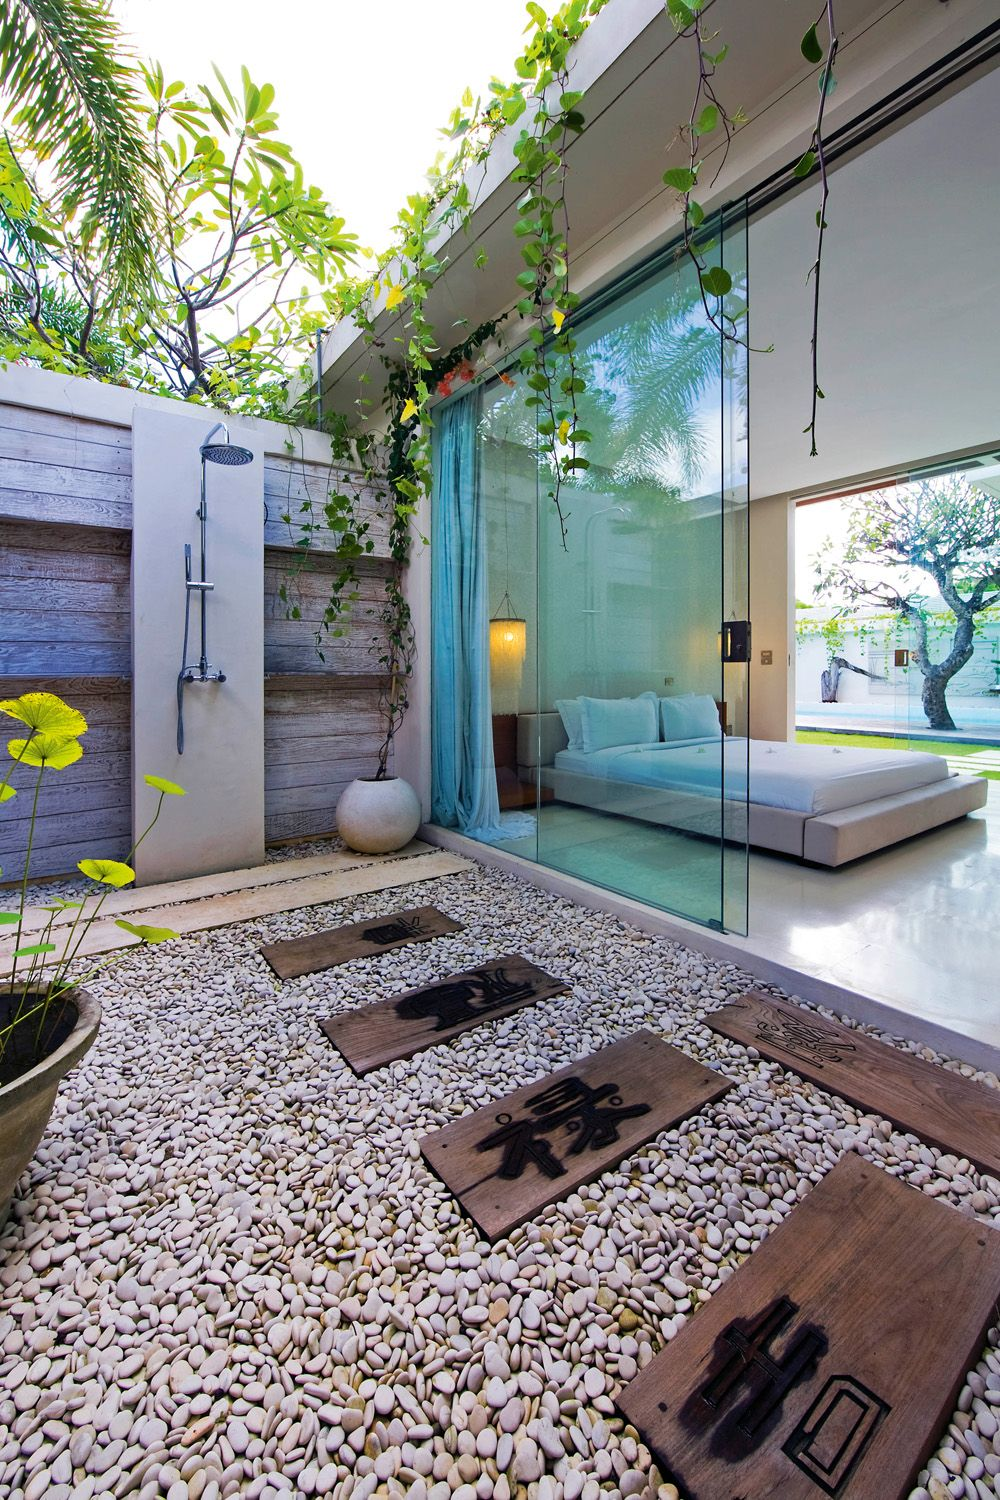 Outdoor Bathroom with an outdoor bathroom or shower area, you can revel in the full